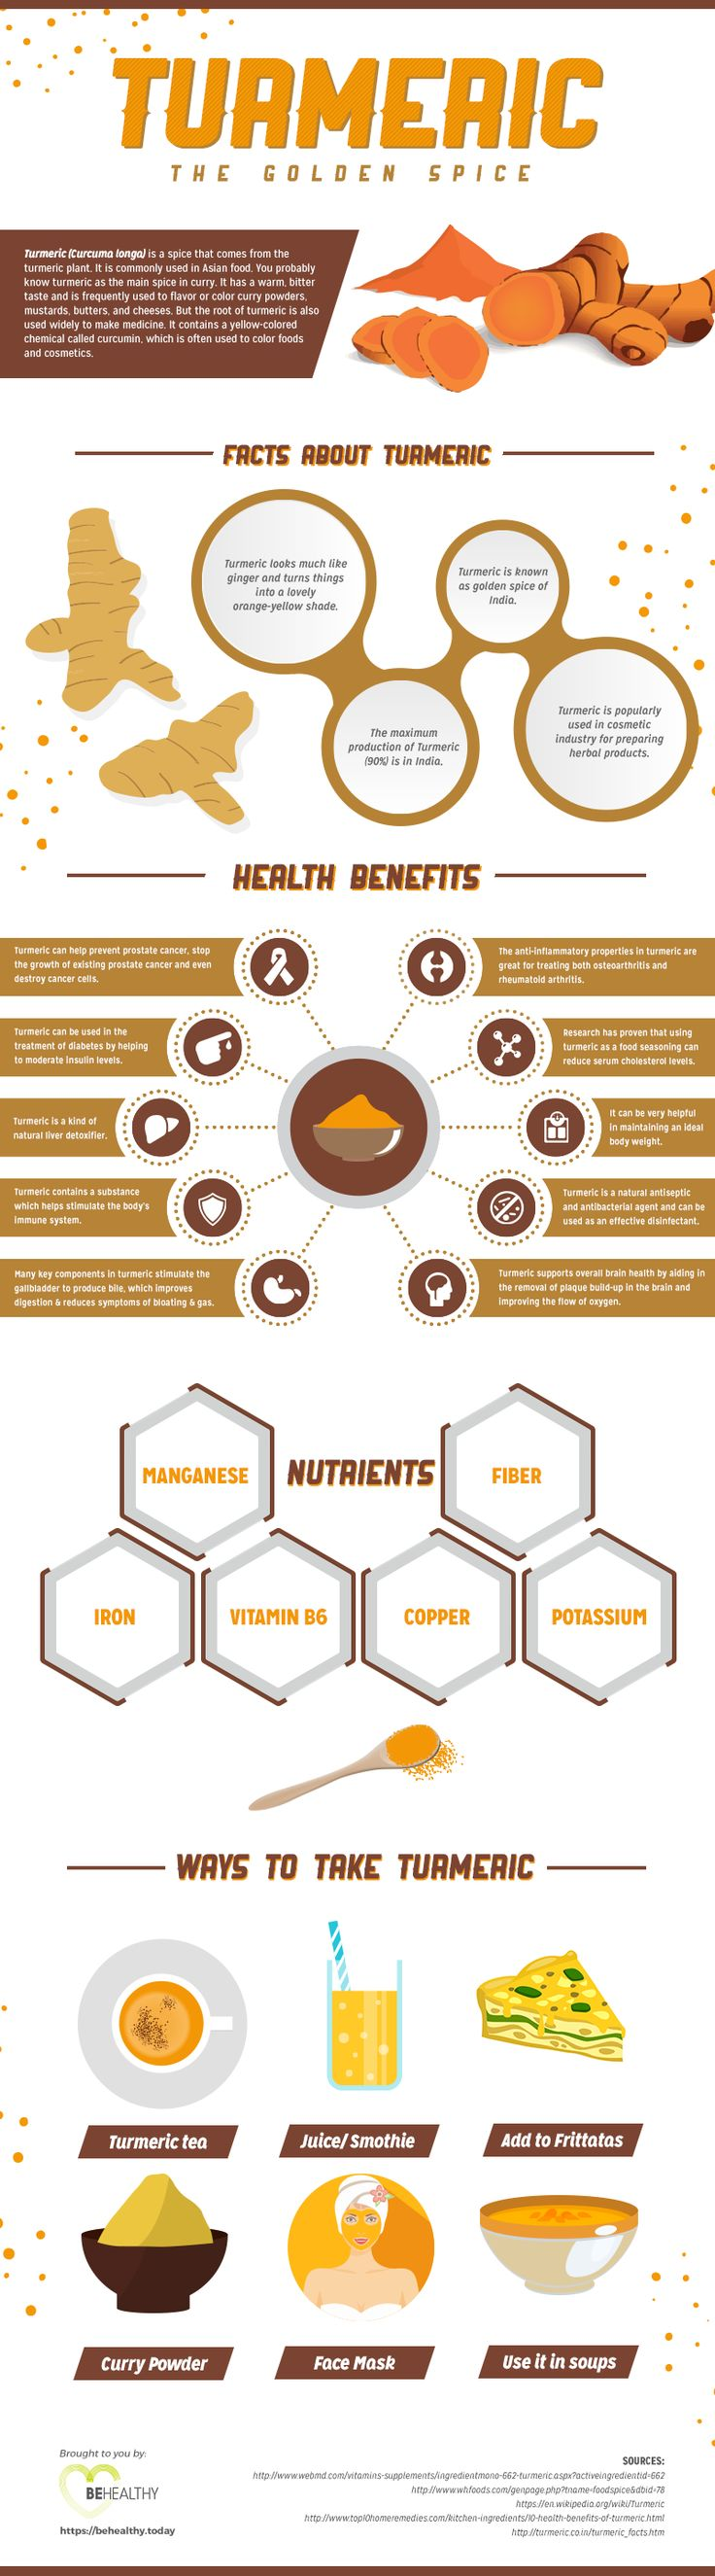 Turmeric Health Benefits Infographic http://www.buzzblend.com